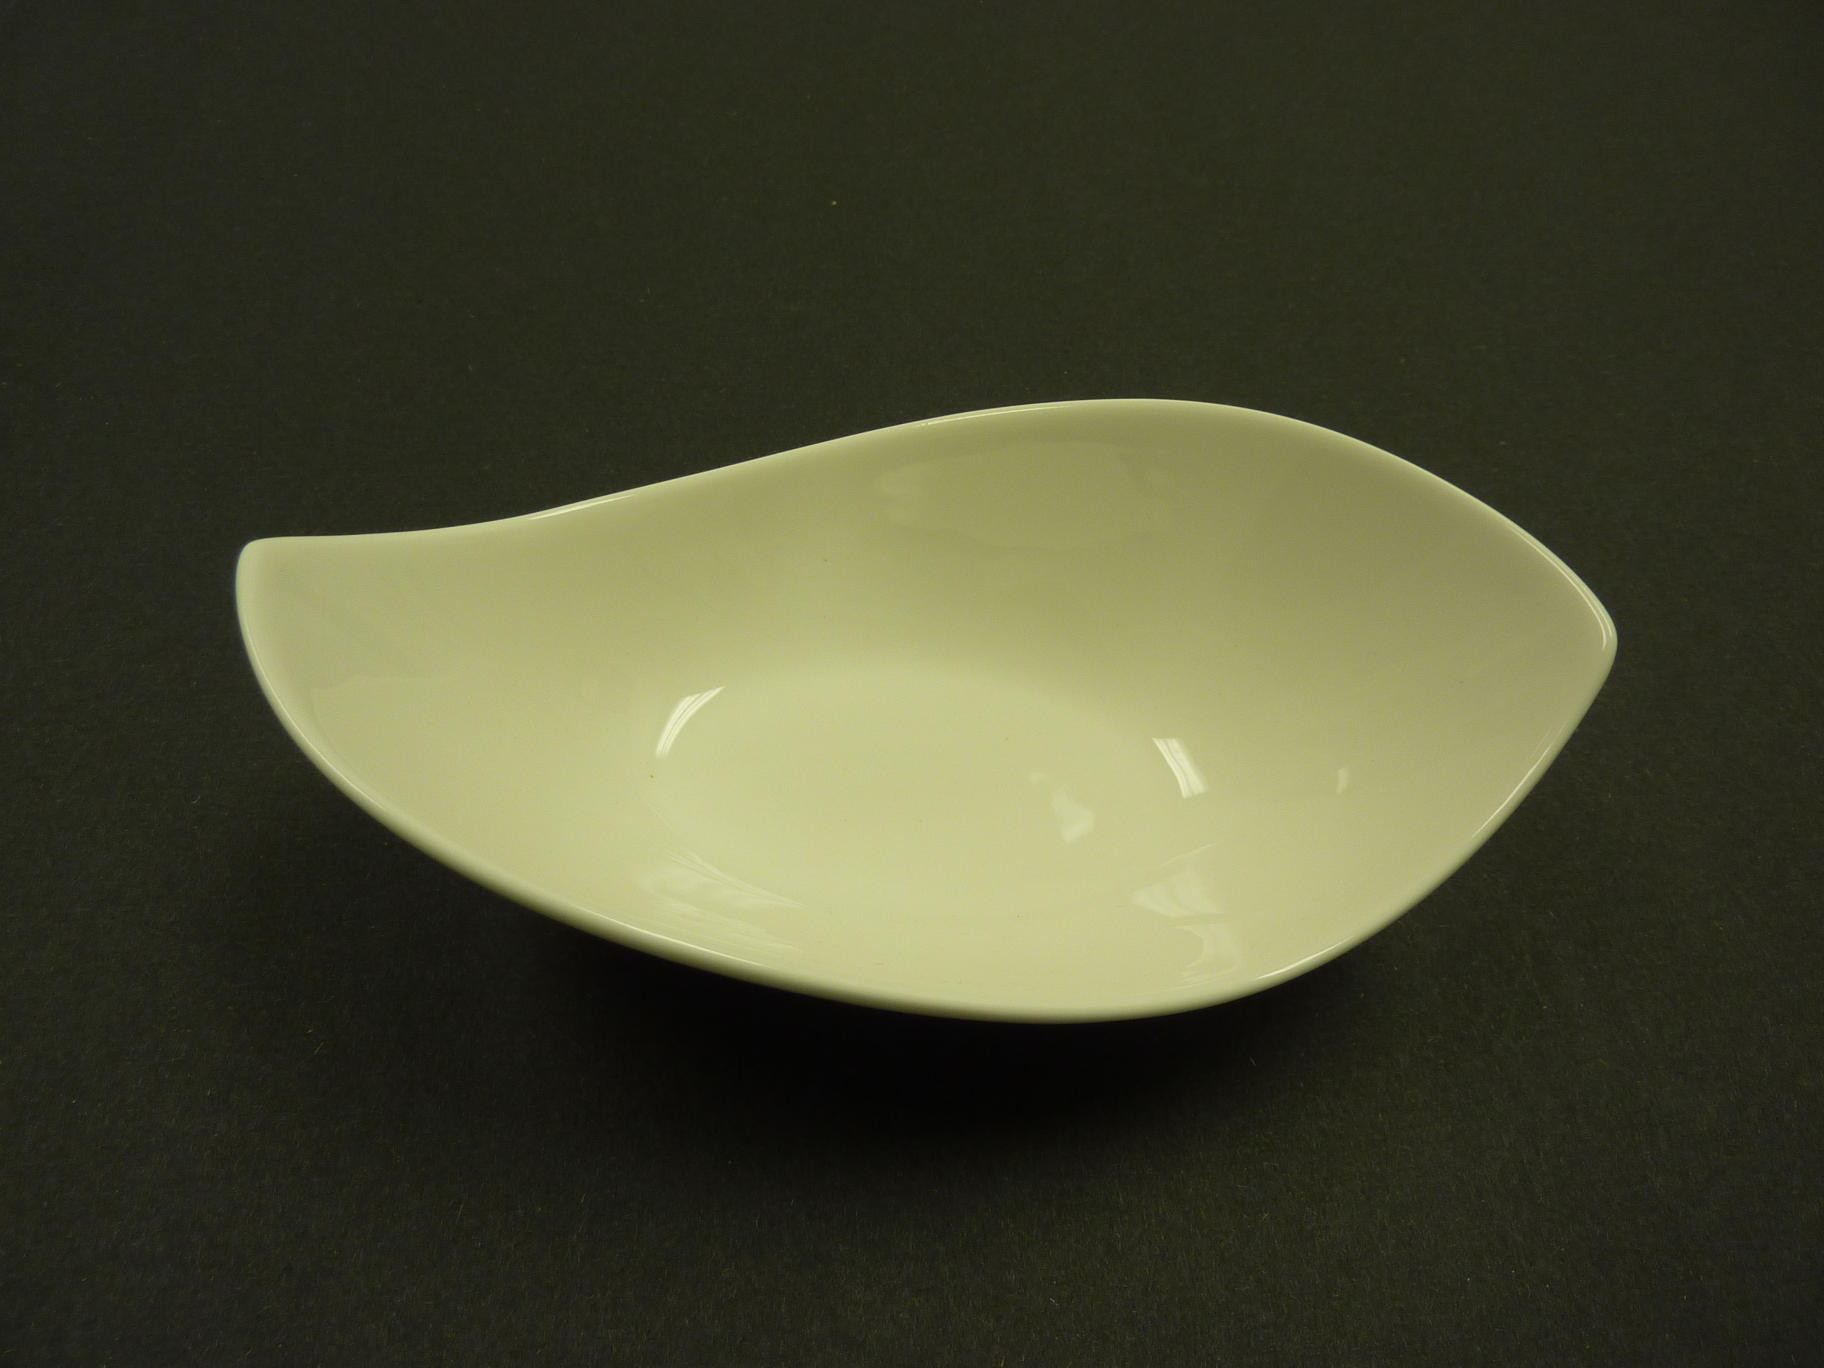 "Yanco fu-708 Fuji 8"" Salad/Dessert Bowl 6 oz."